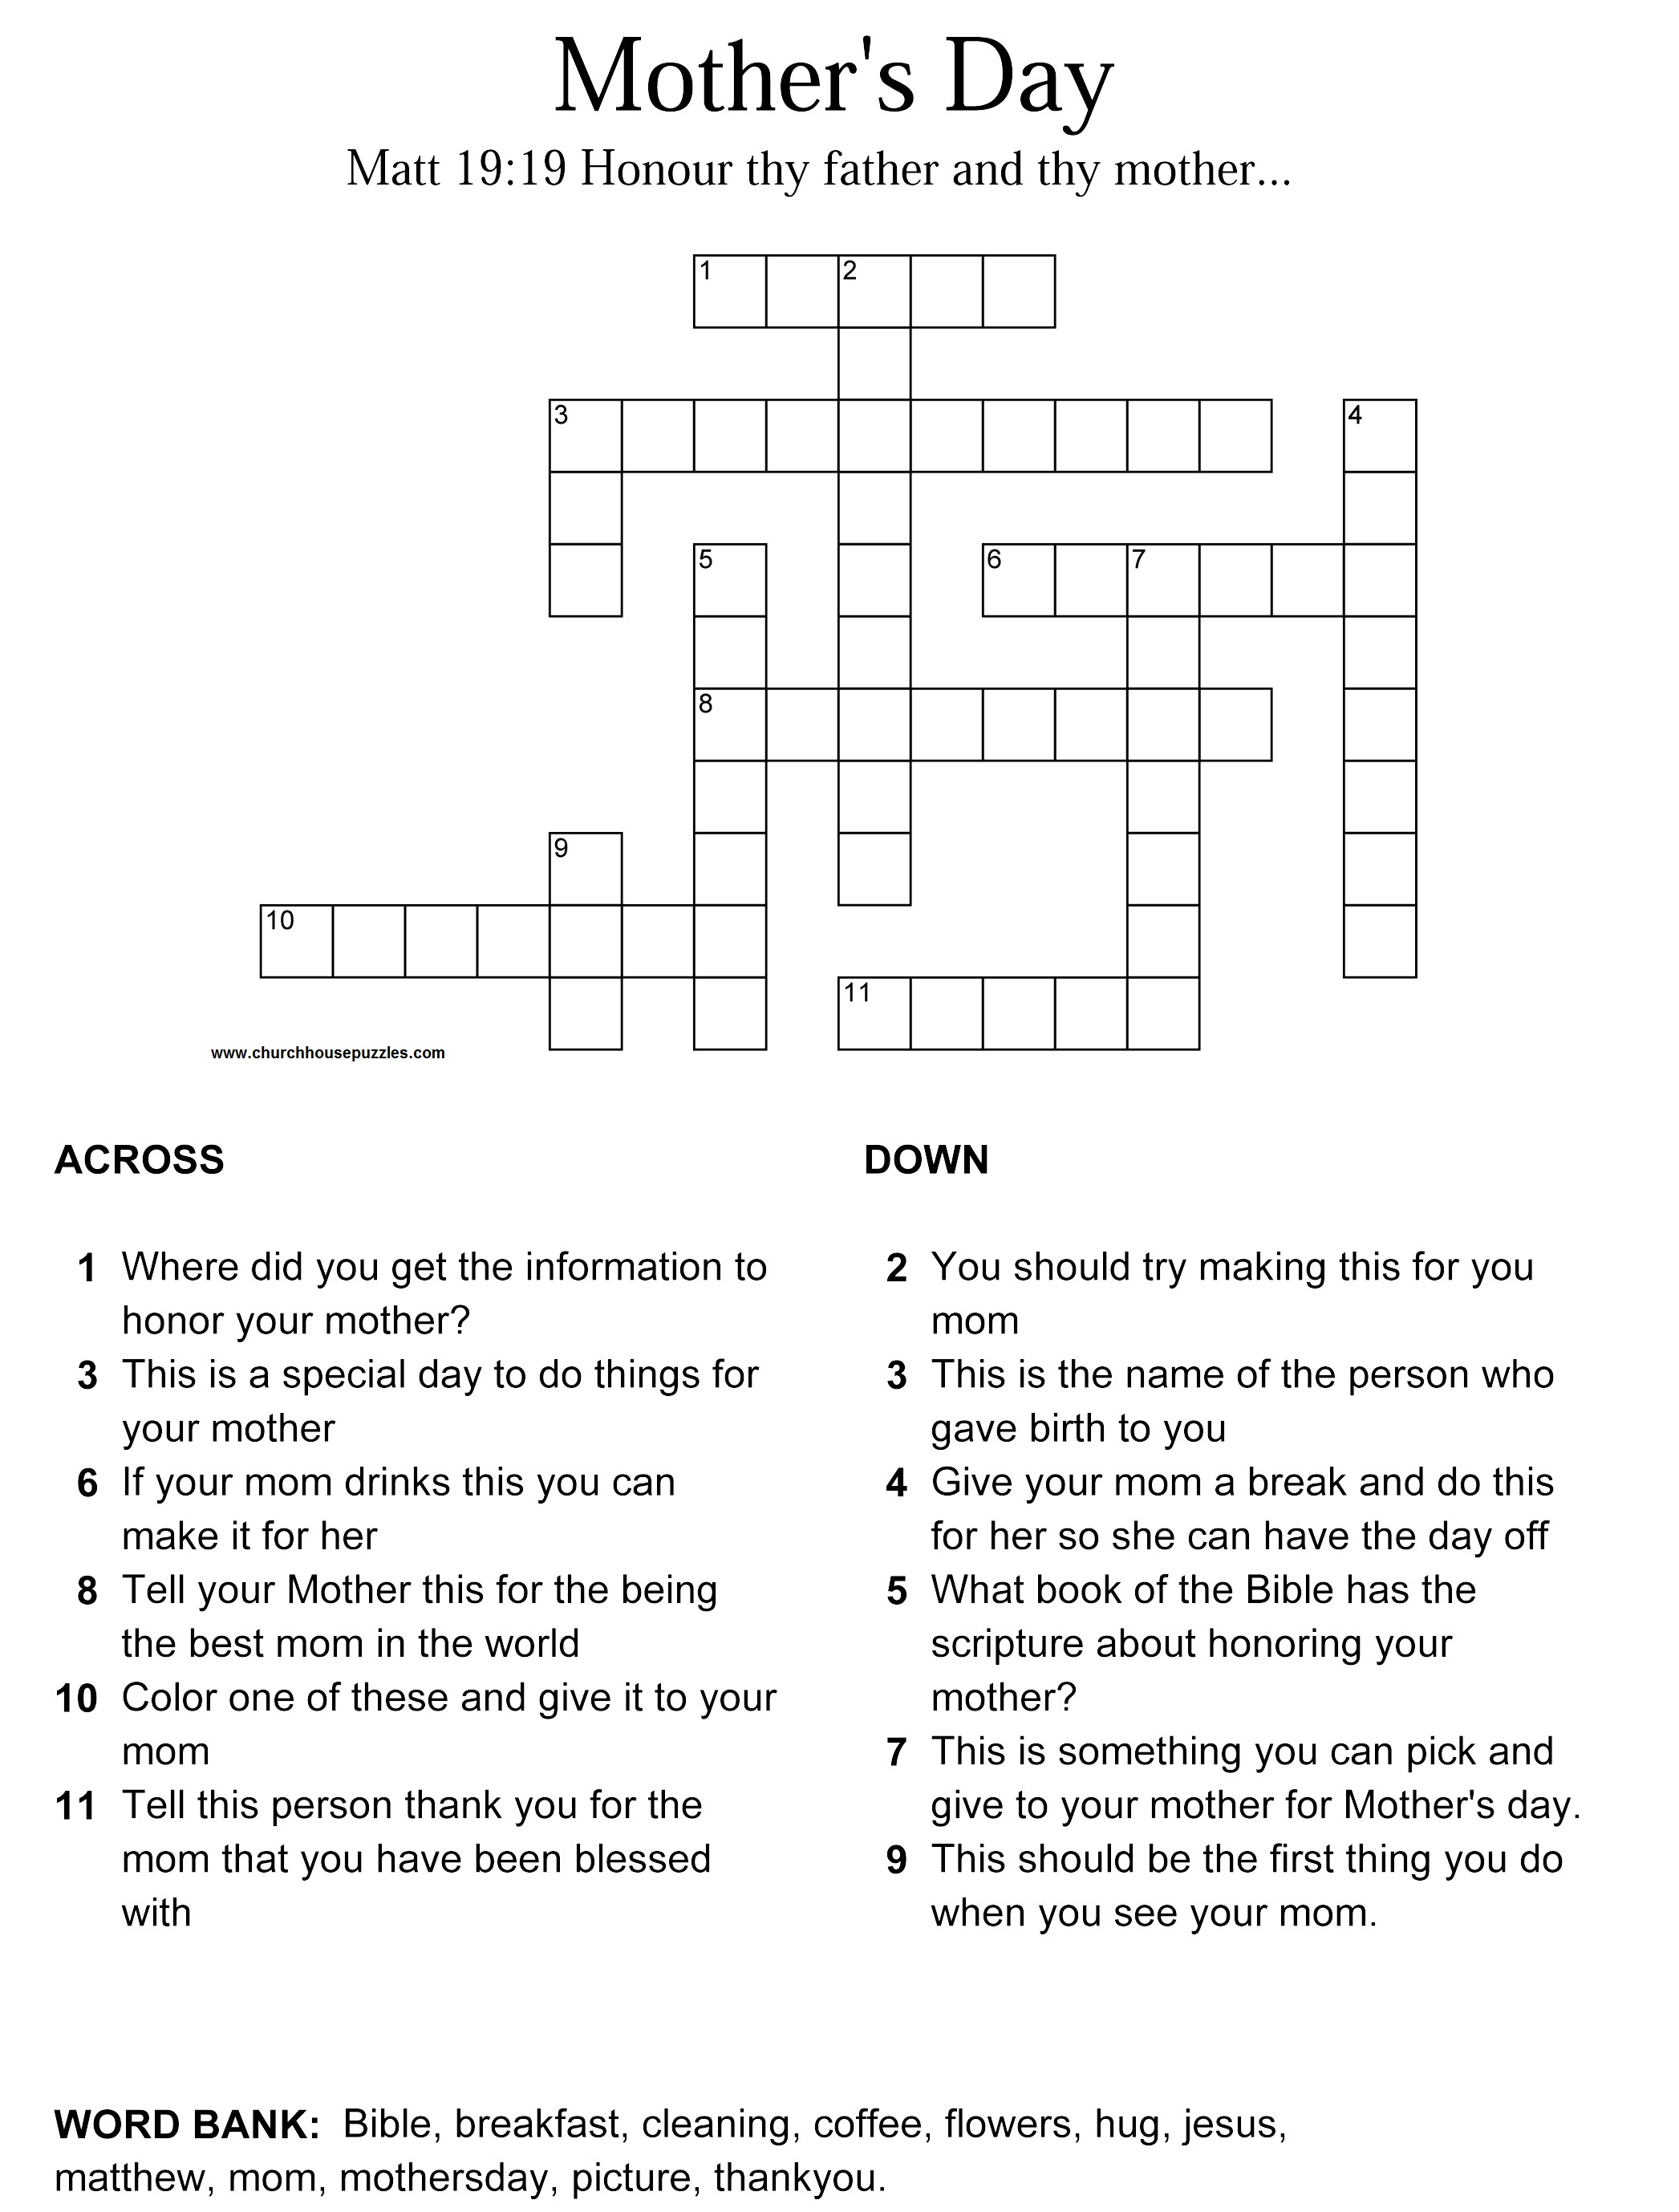 Mother's Day Crossword Puzzle - Printable Crossword Puzzle Of The Day